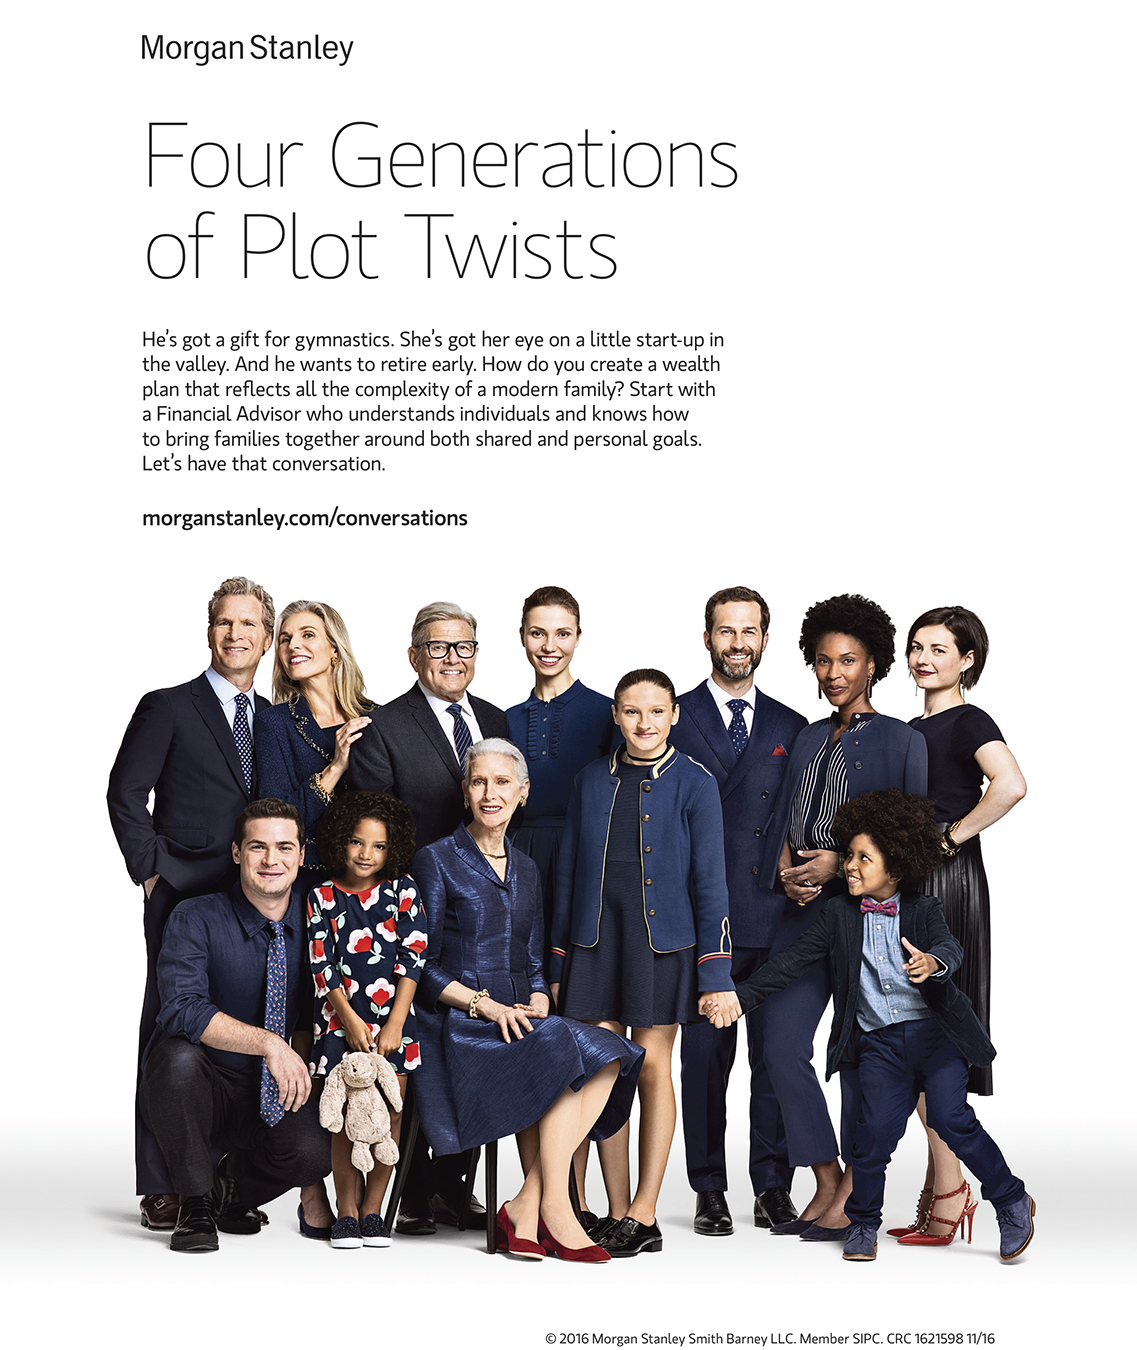 Advertising: Morgan Stanley, Family Portrait